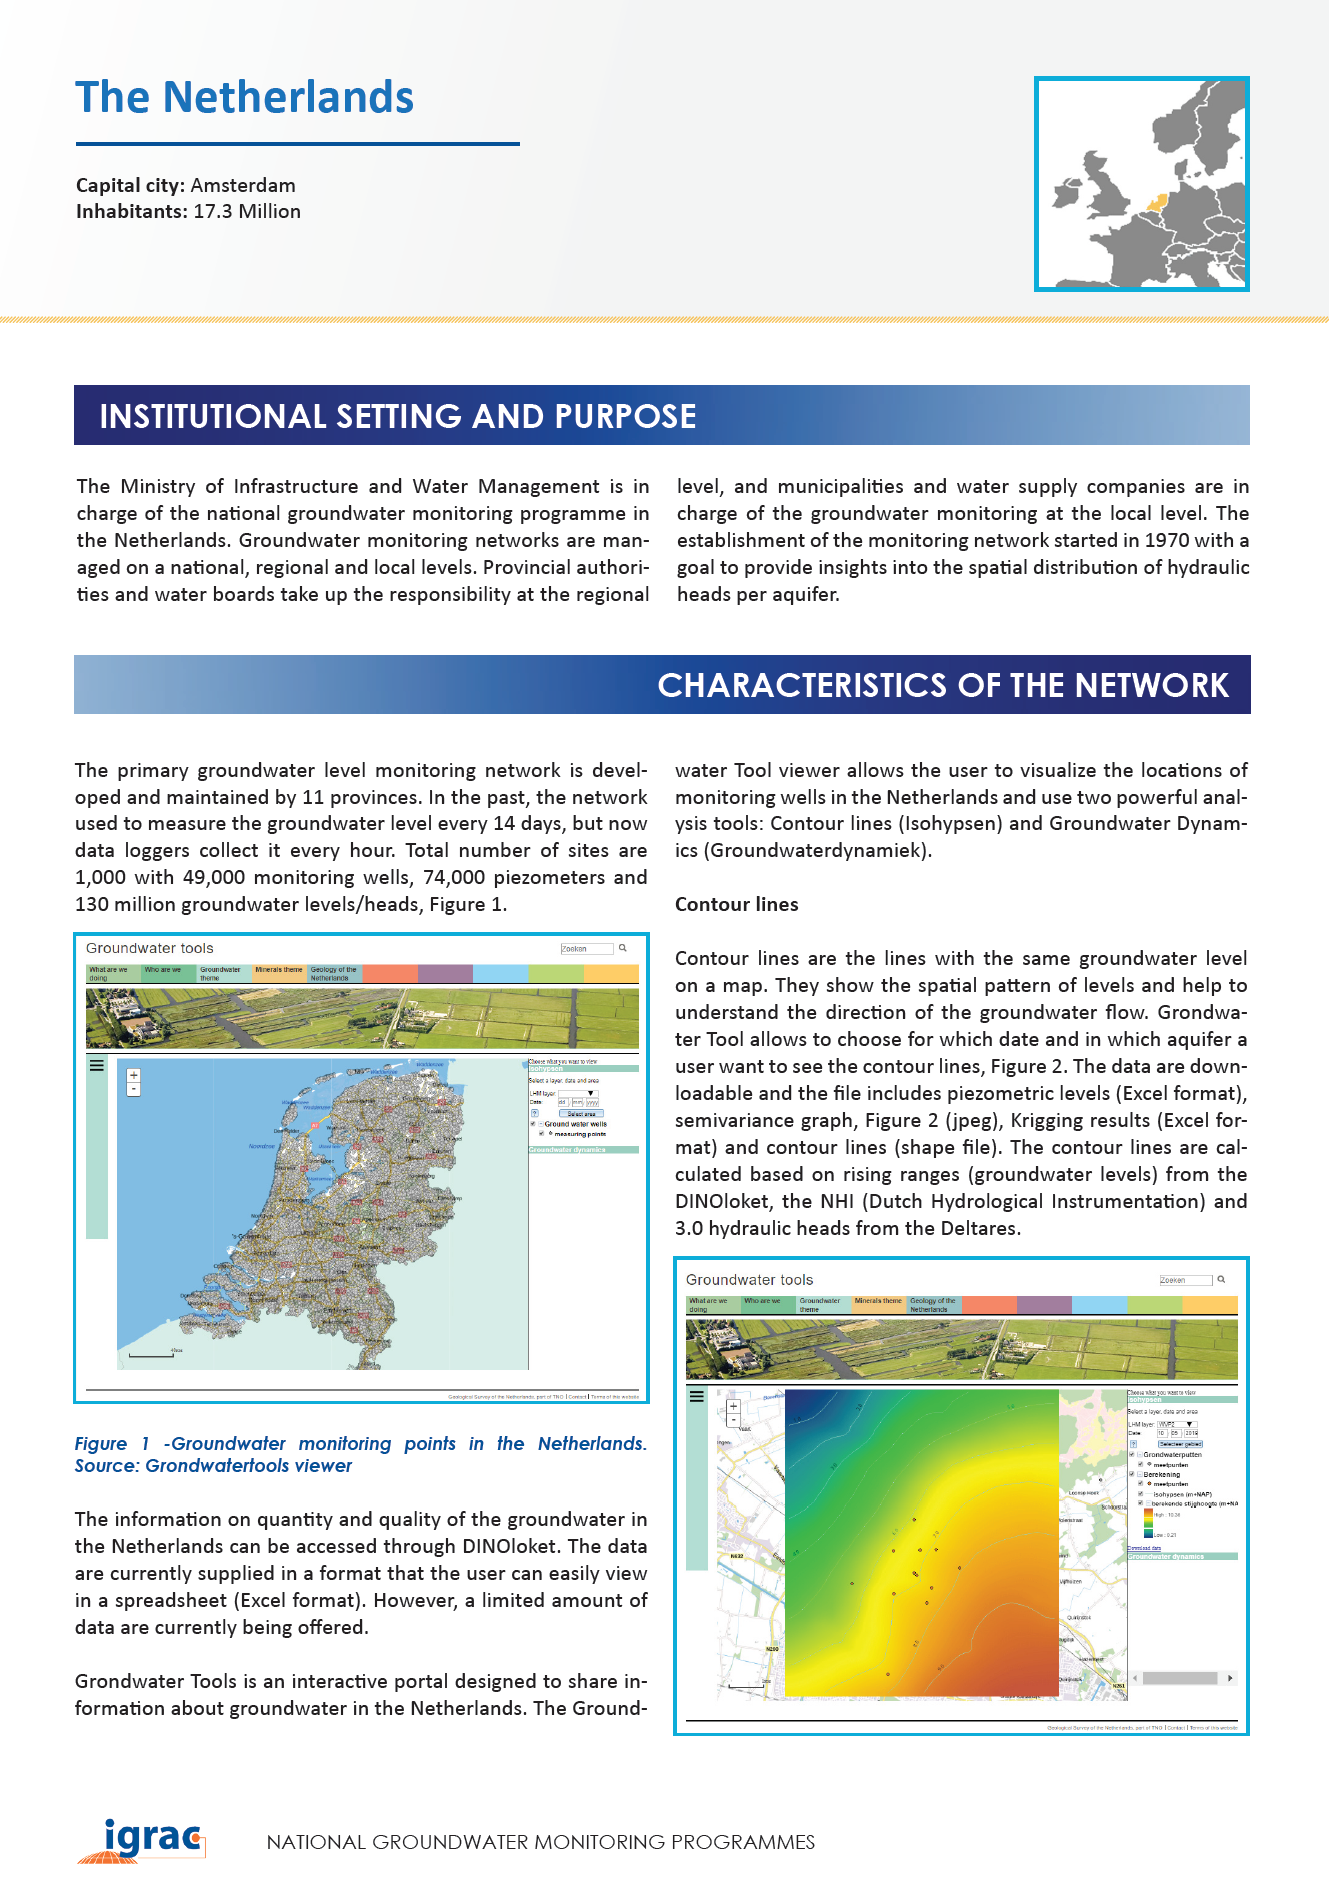 Groundwater monitoring country profile - The Netherlands